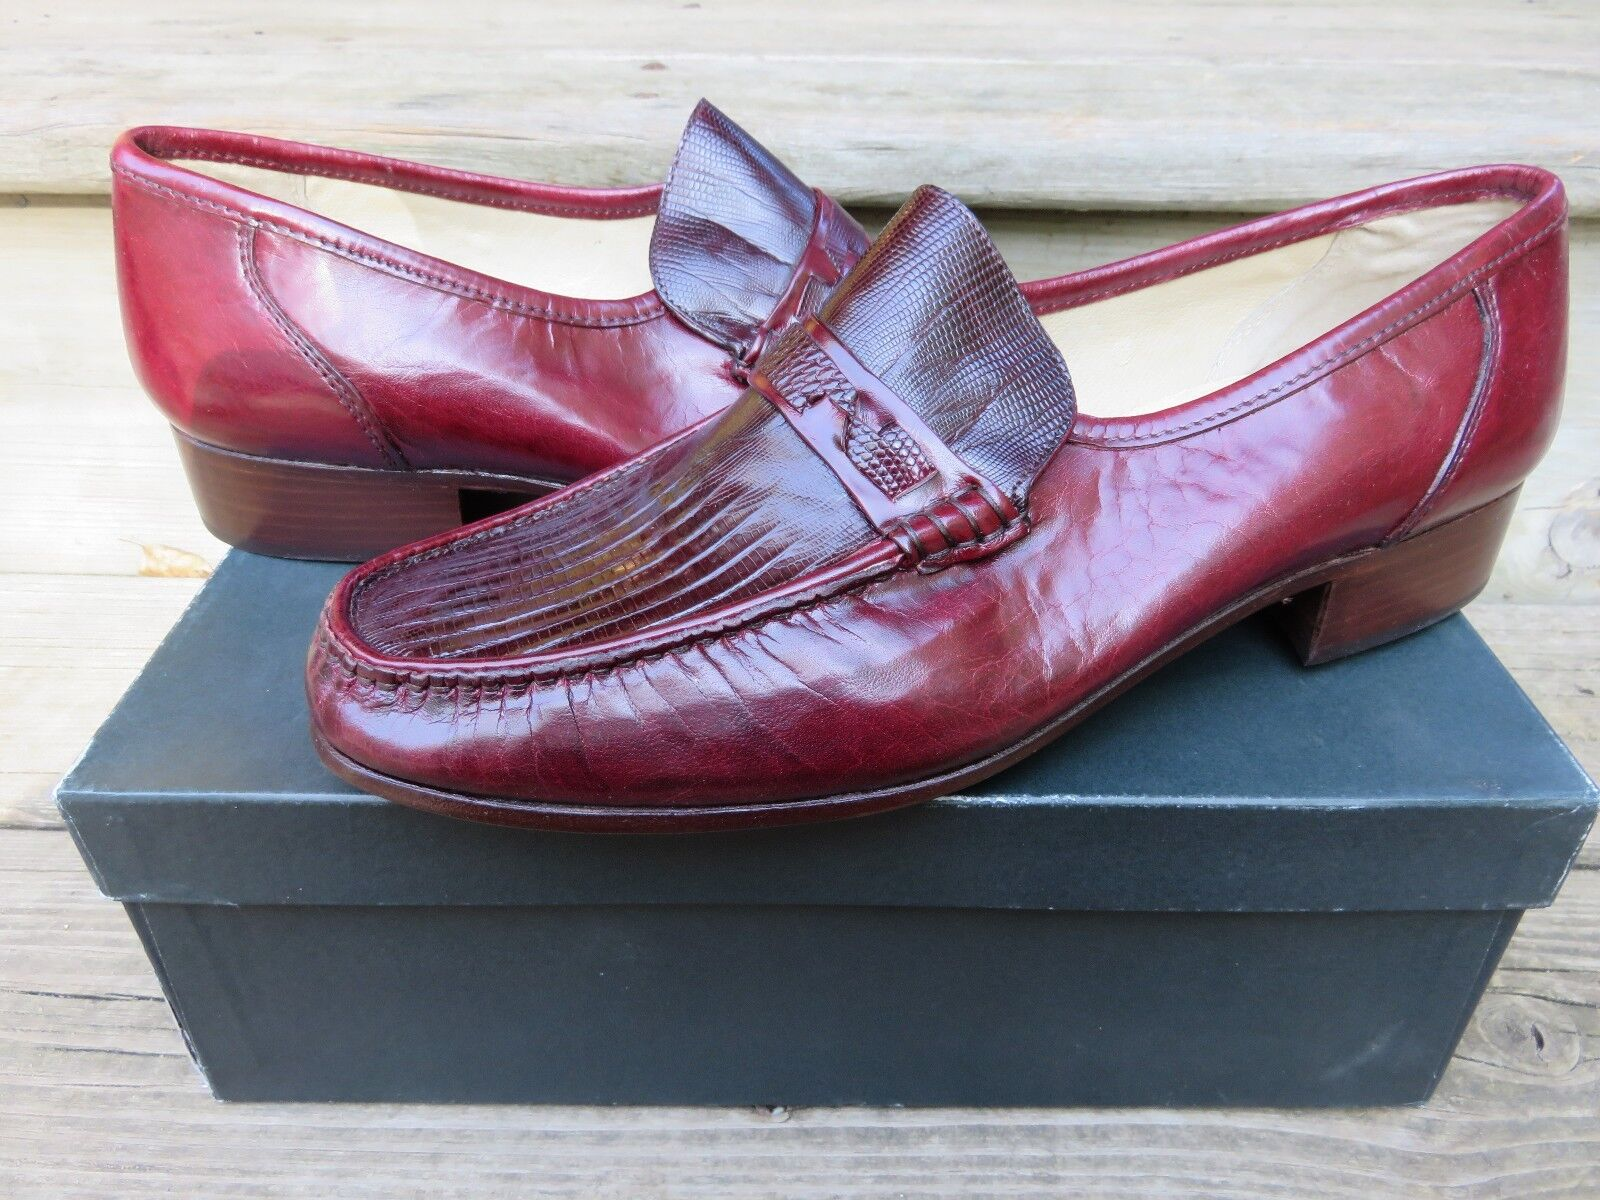 colorways incredibili NEW Nettleton Slip-on Loafer Loafer Loafer Dress scarpe Burgandy Dimensione 10 M MADE IN ITALY NOS  i nuovi stili più caldi